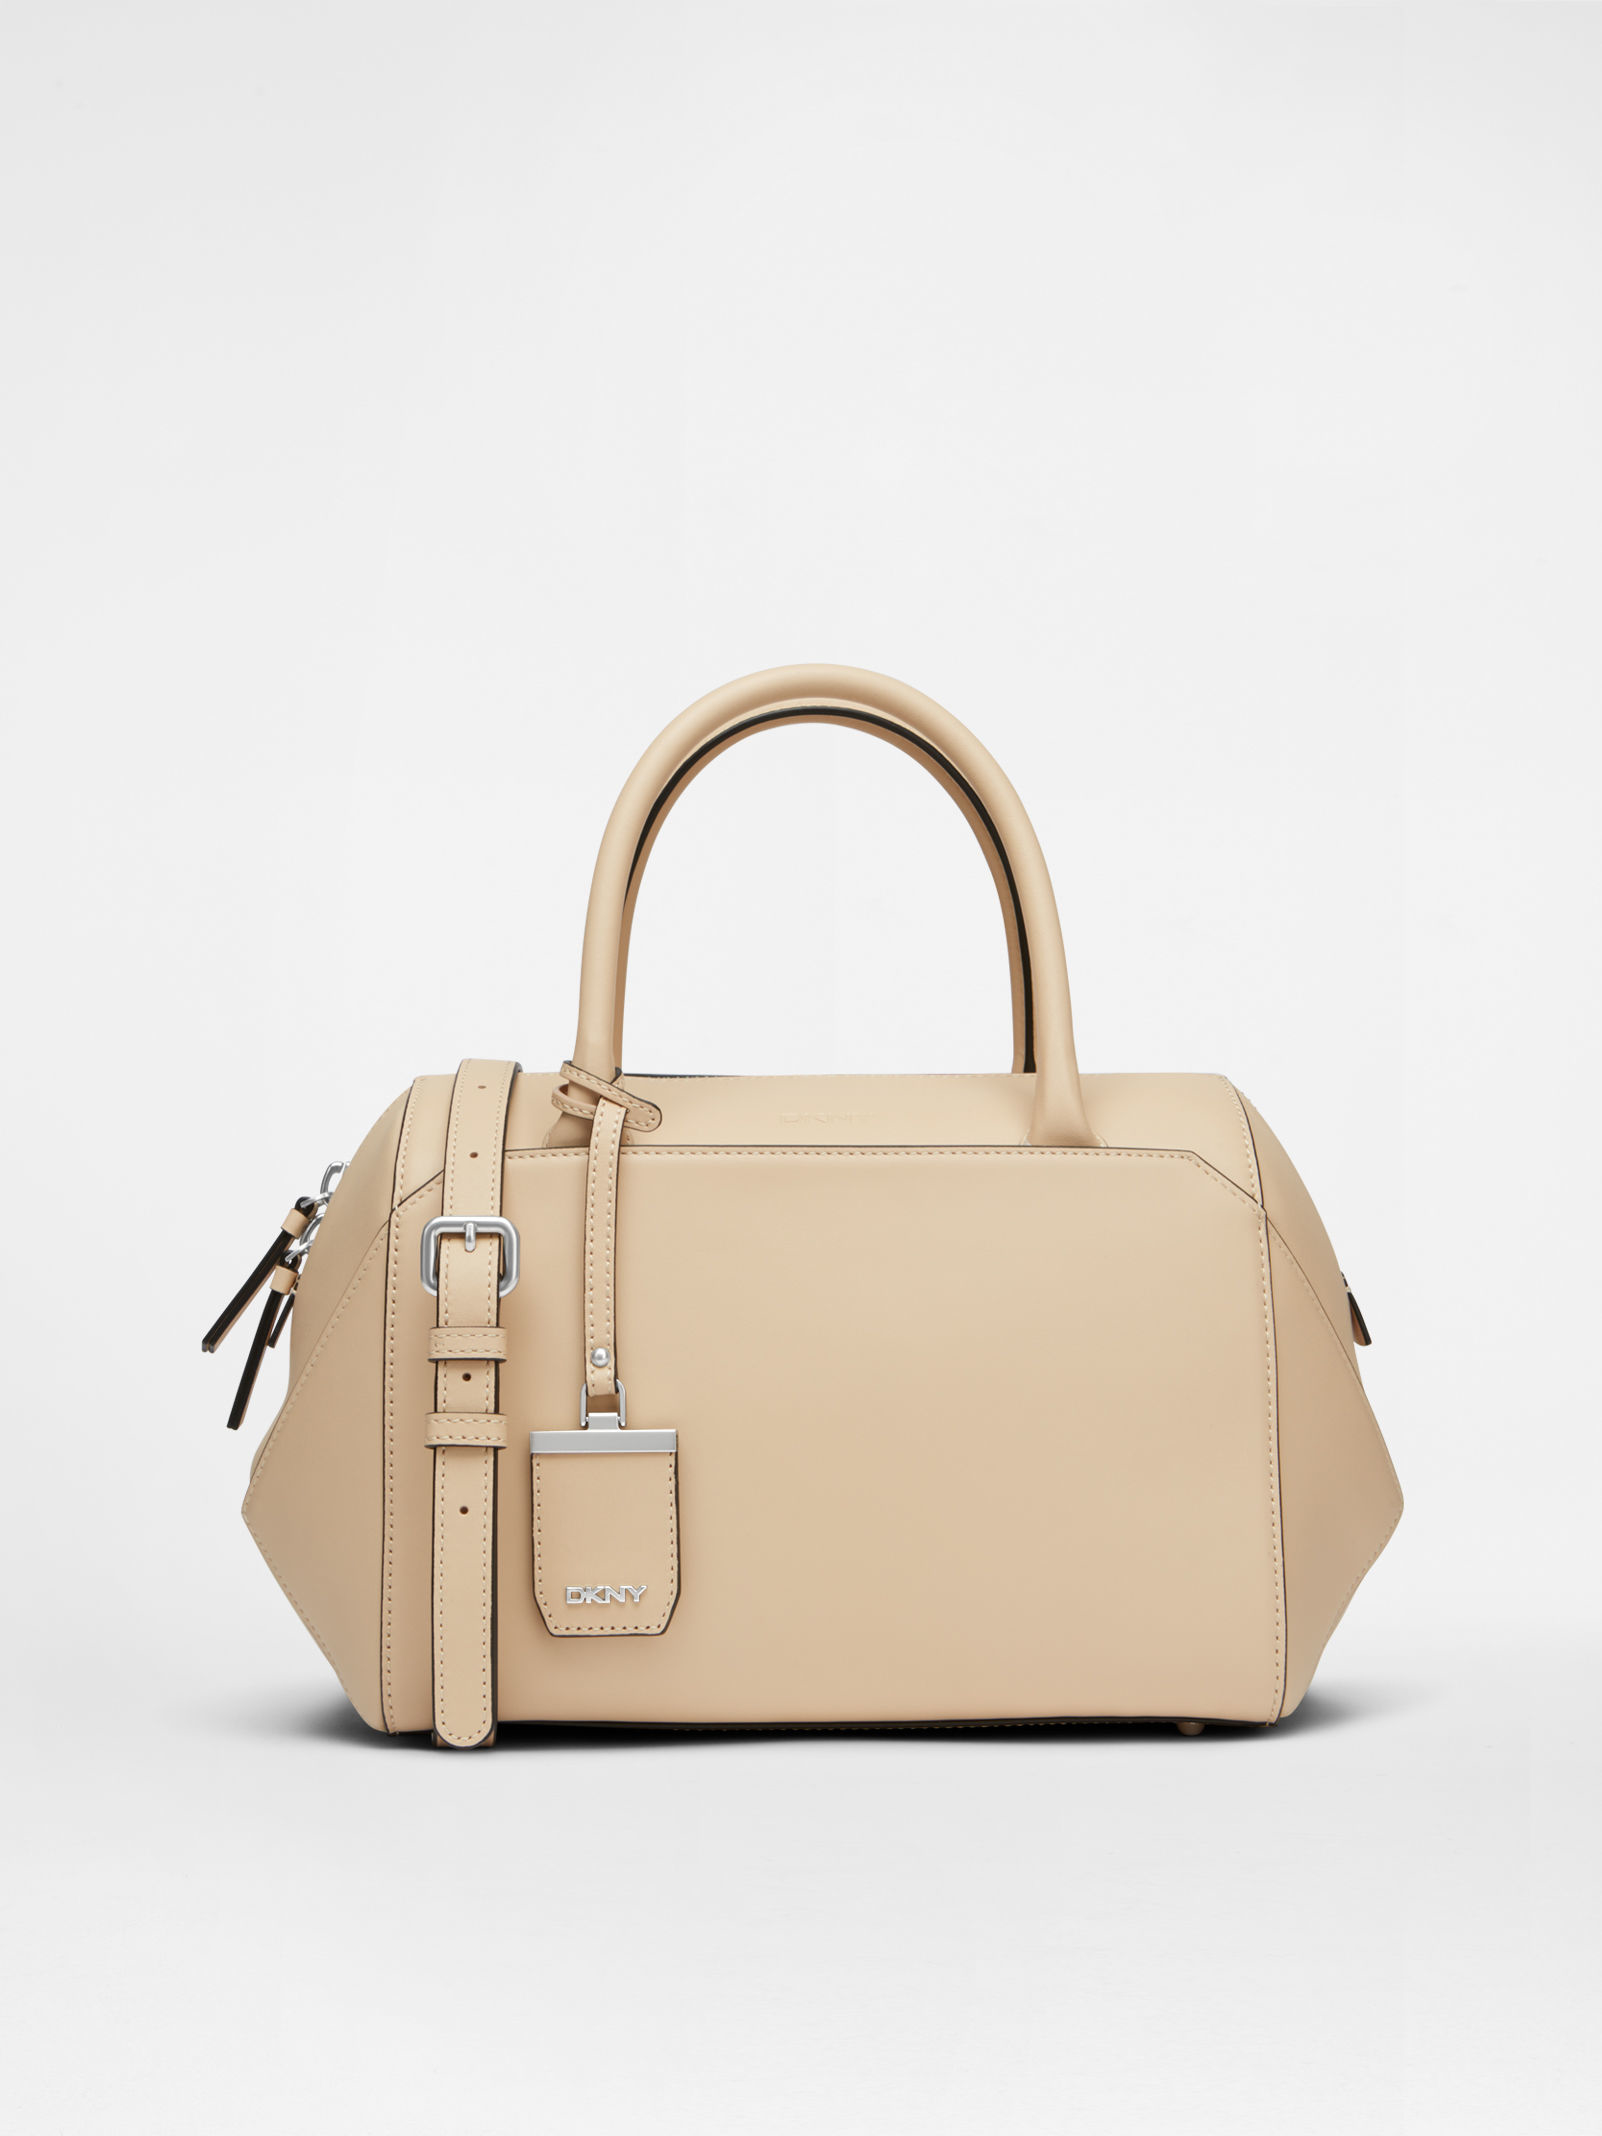 Dkny 3d Leather Satchel in Natural | Lyst